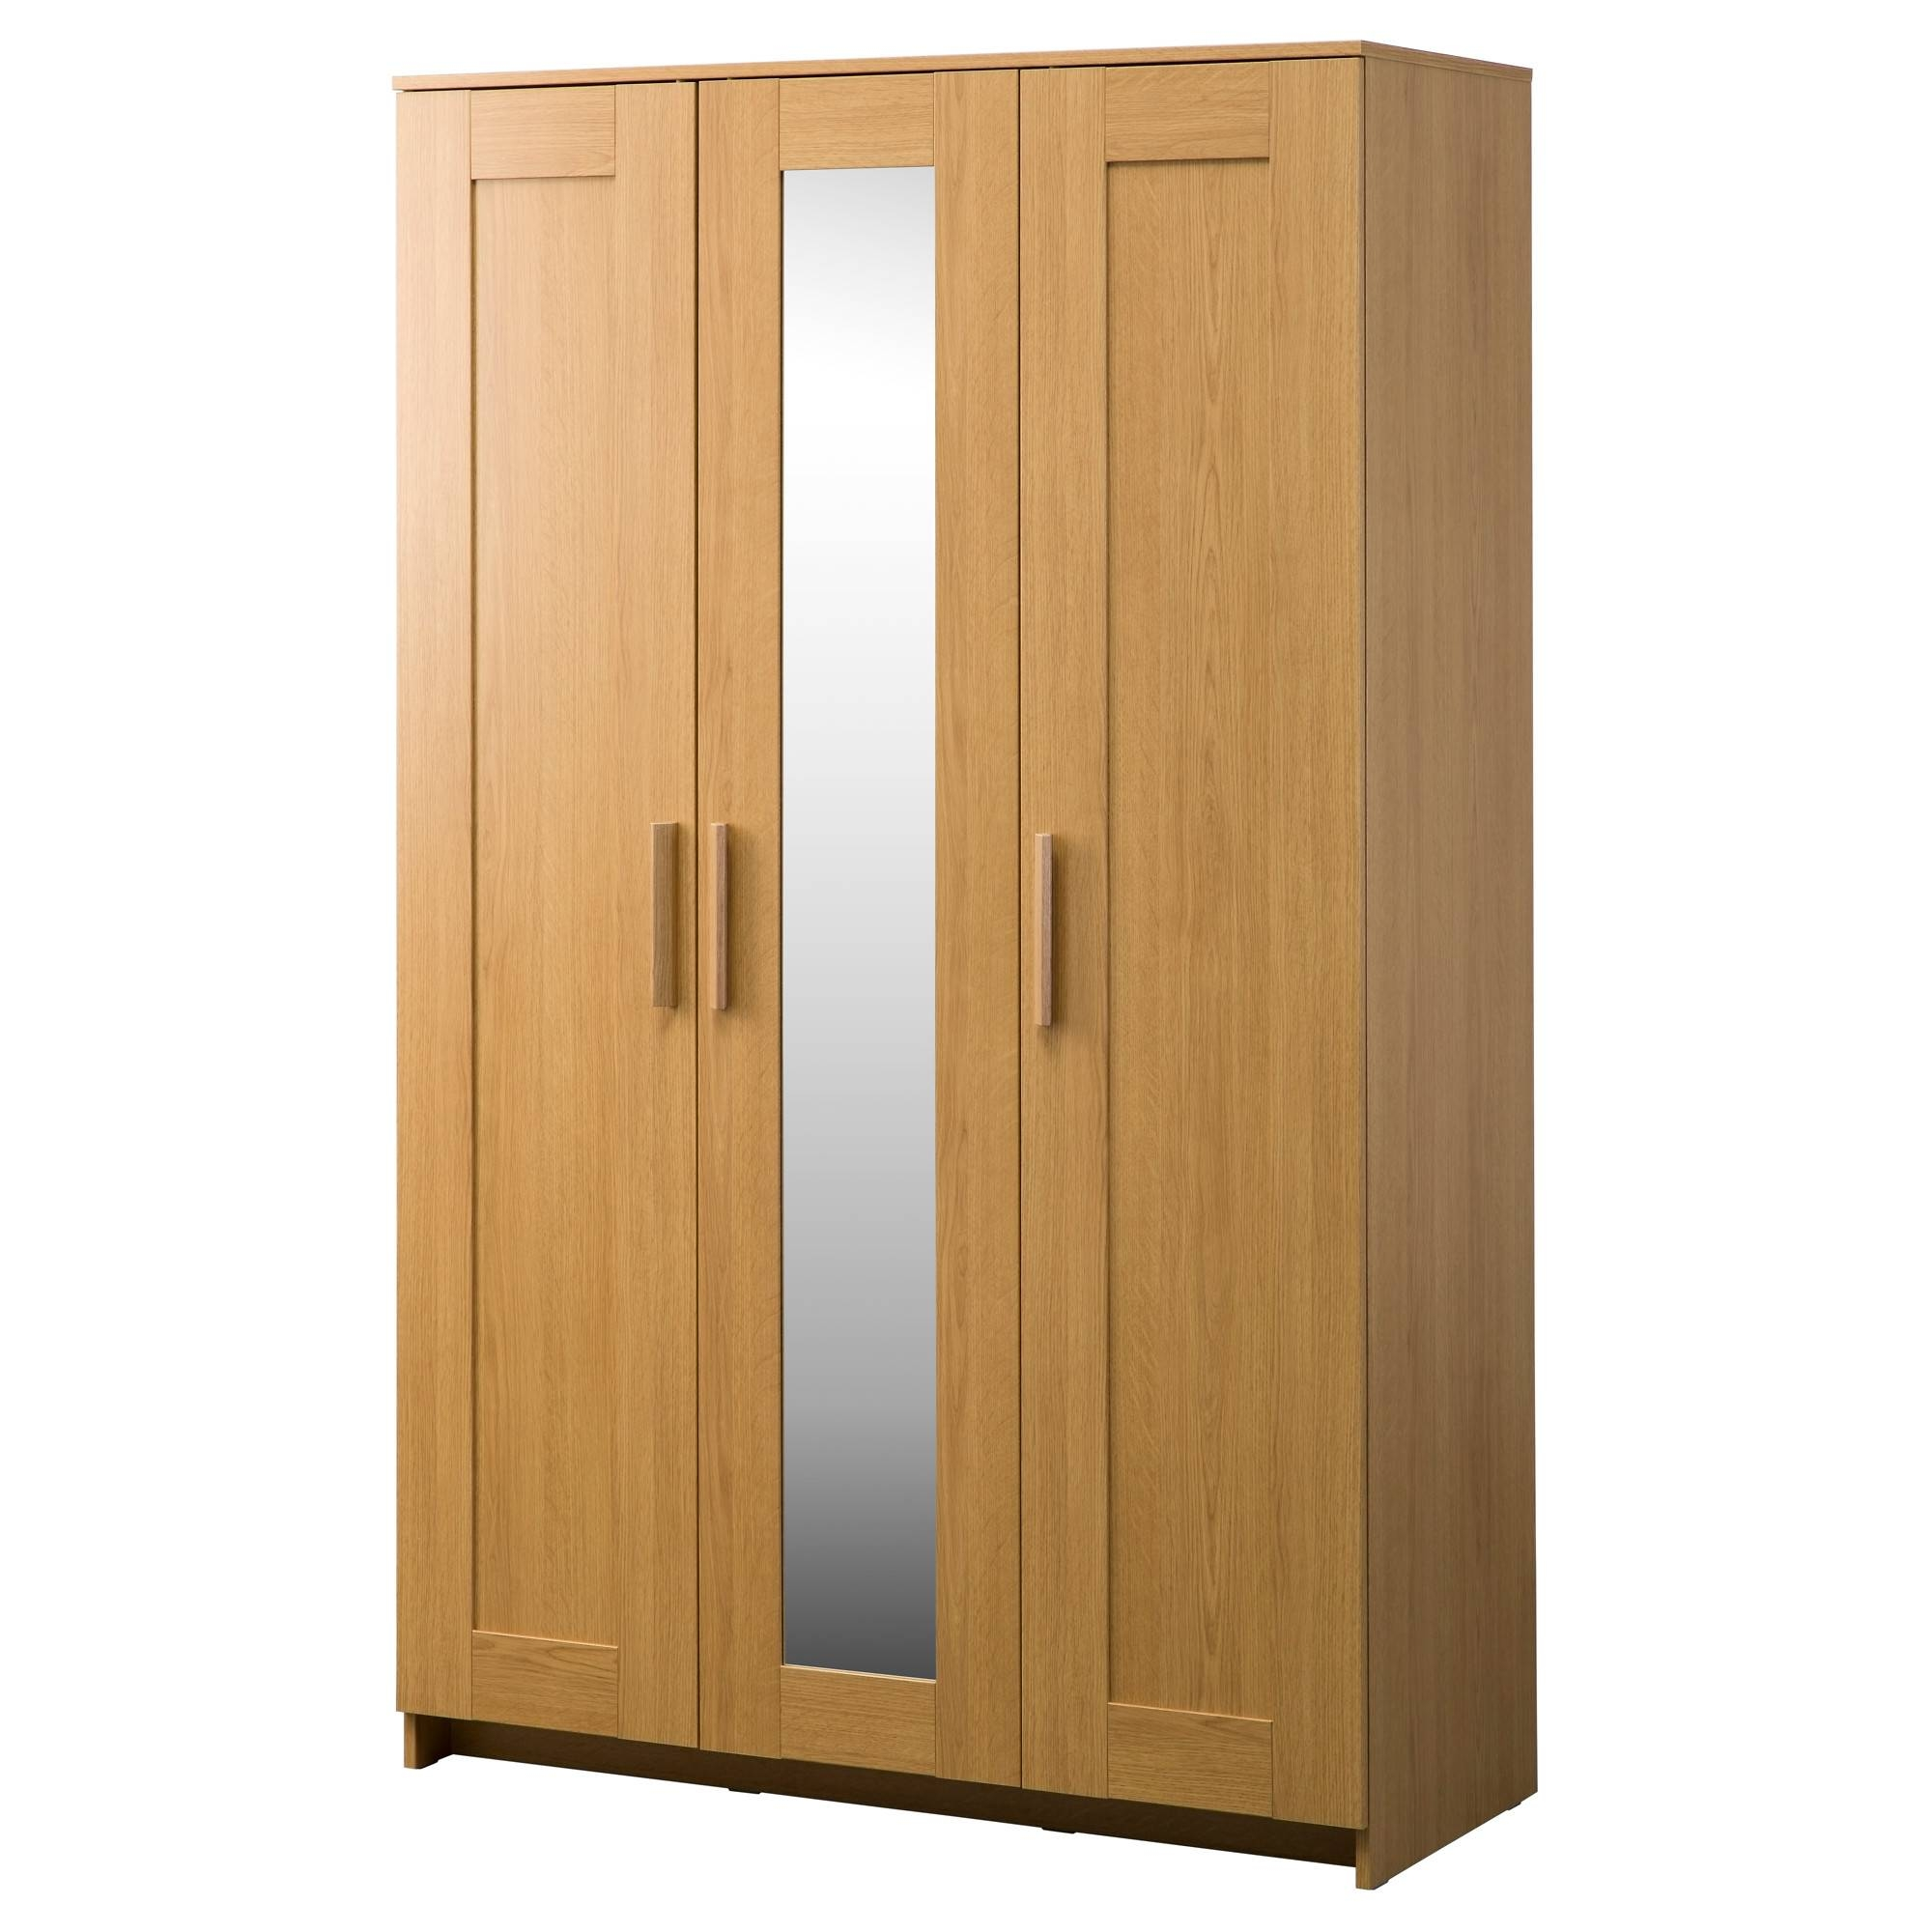 Popular Photo of Cheap Double Wardrobes